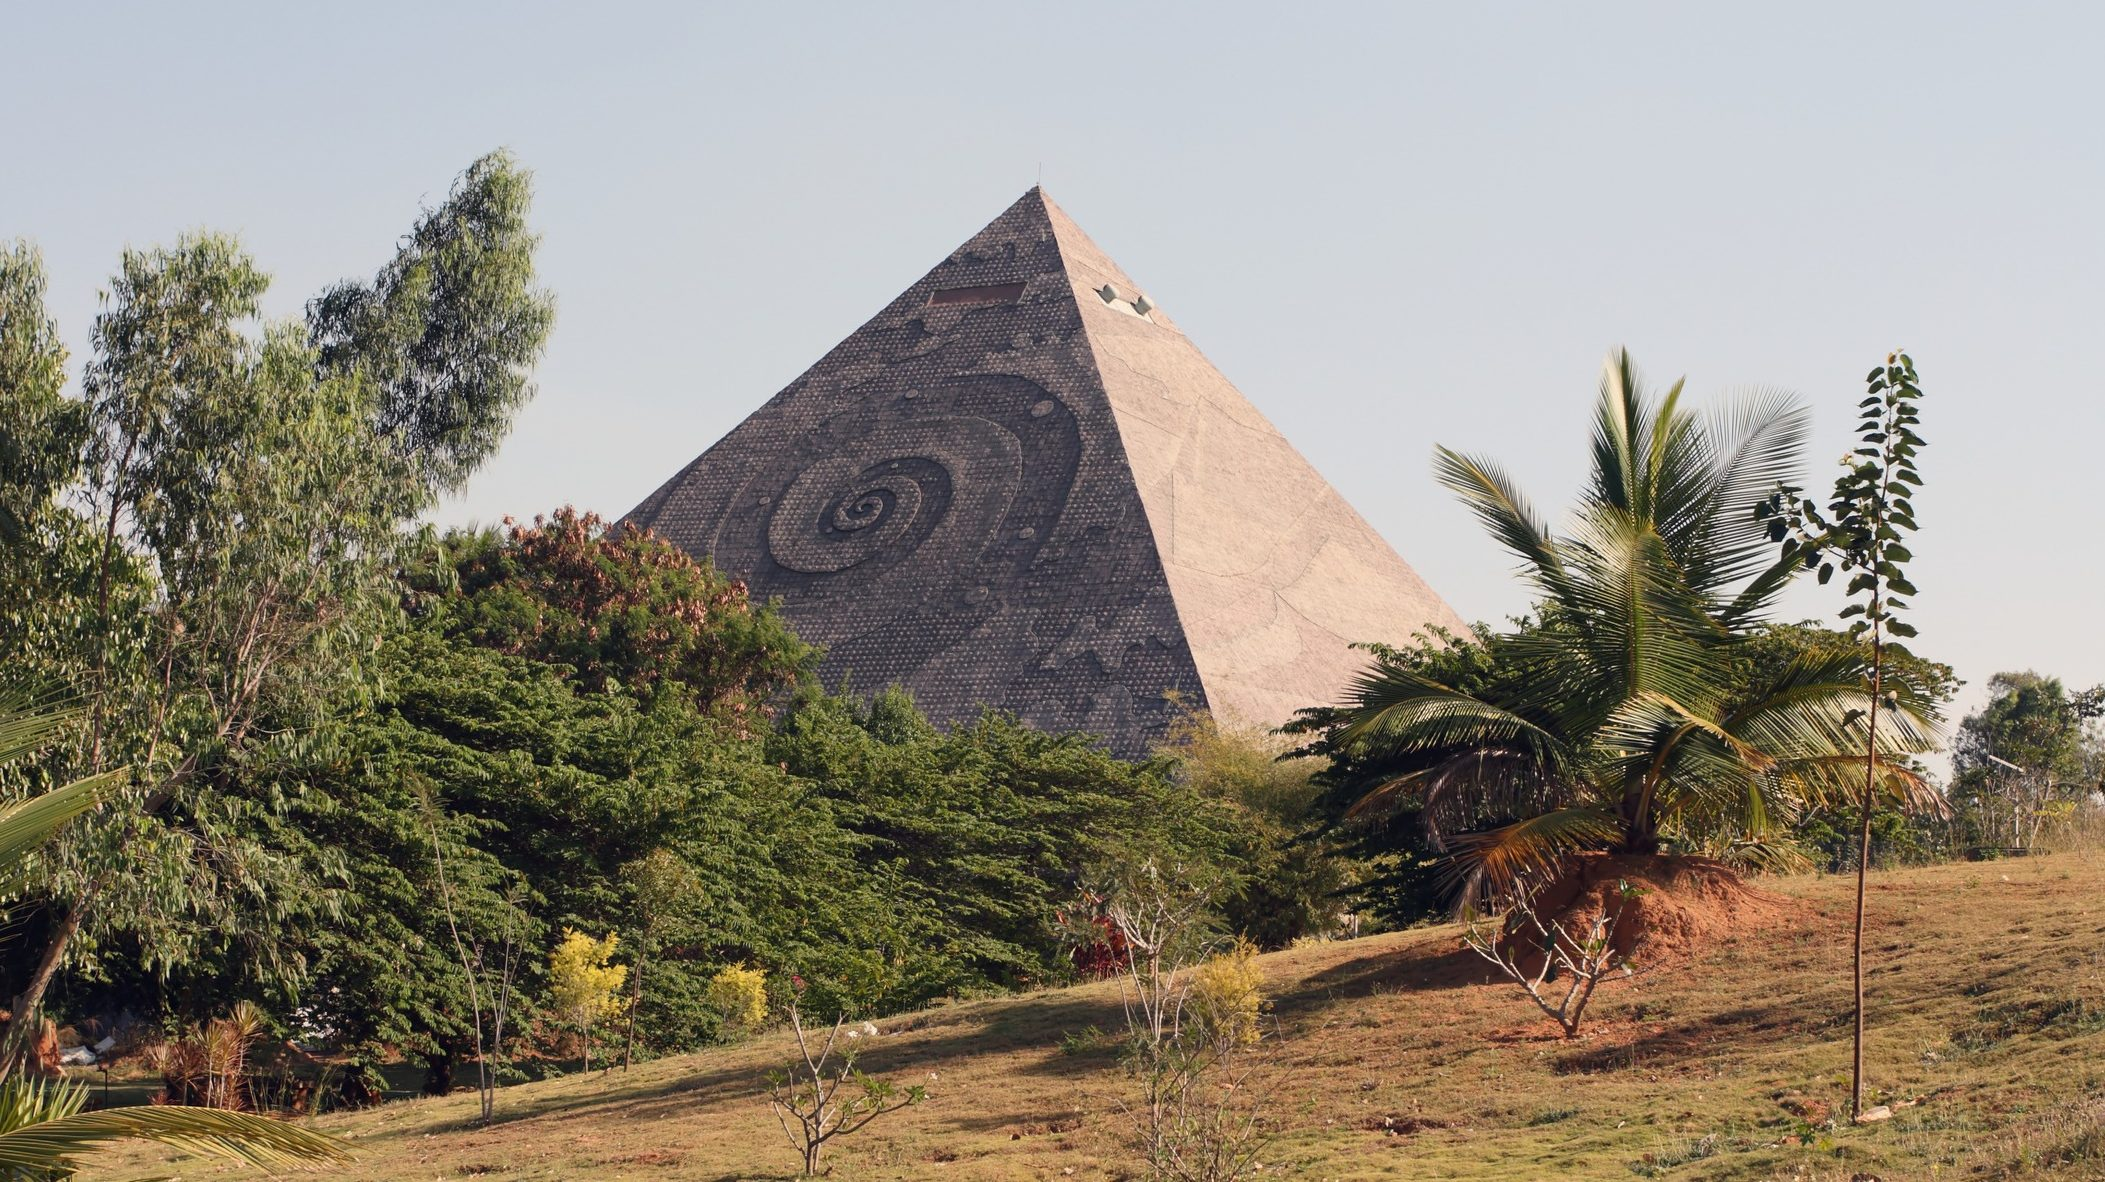 Can Pyramids Enhance Meditation?